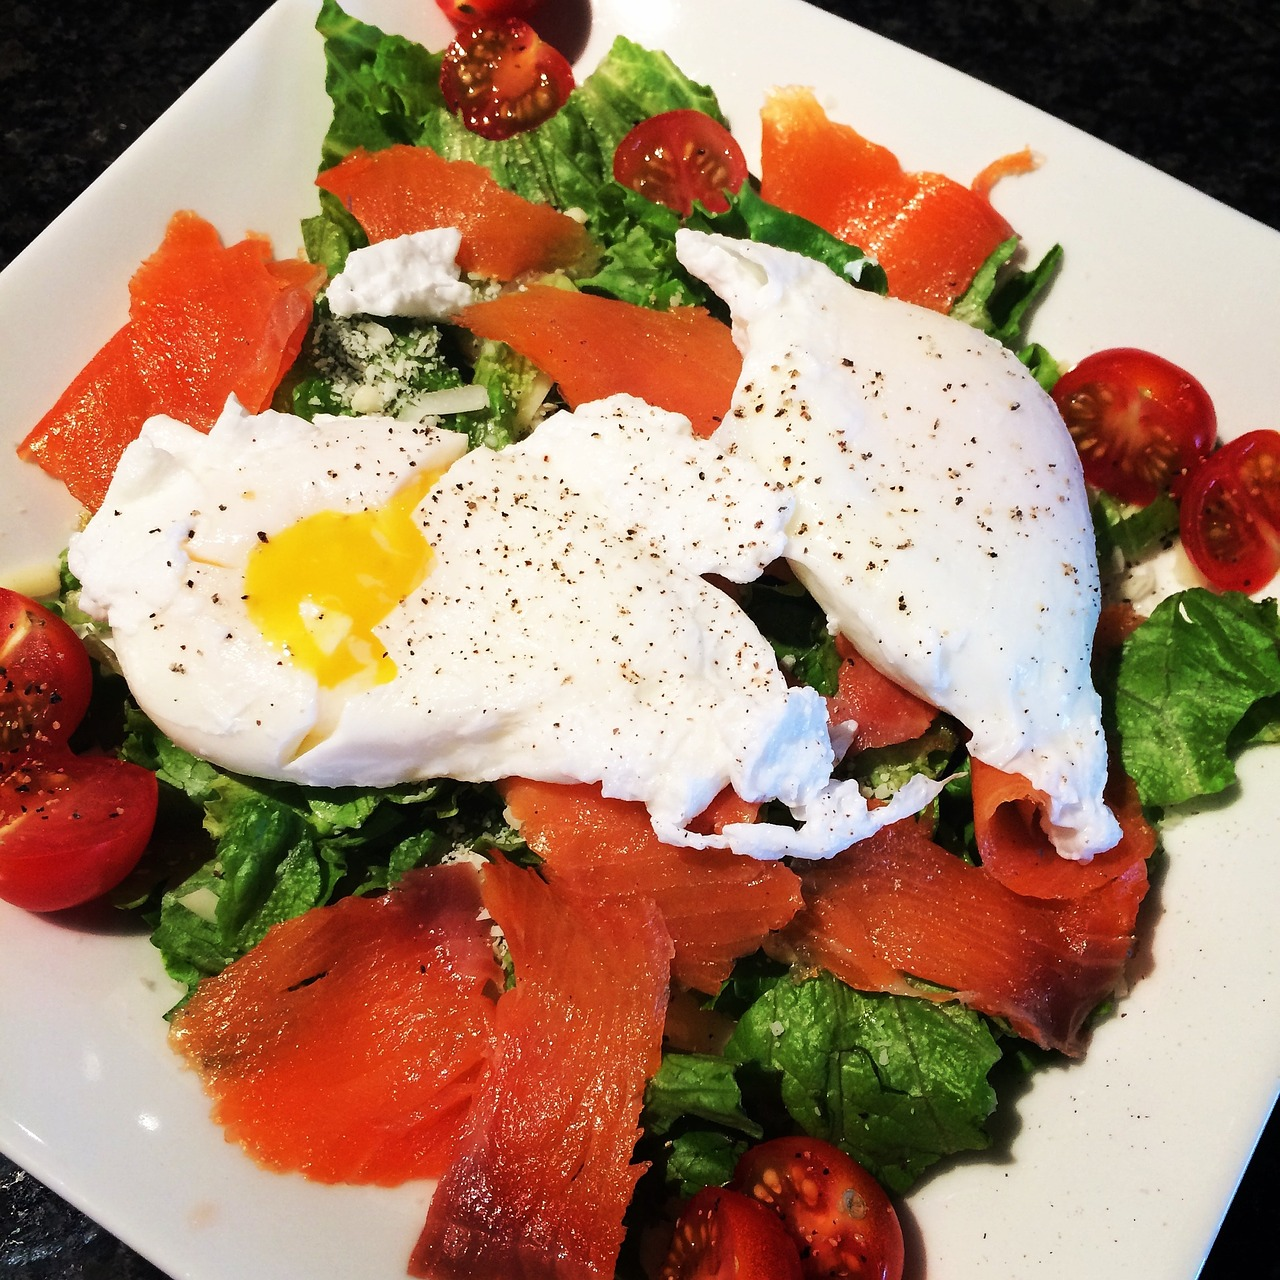 17 Ways To Cook Eggs: Easy Egg Recipes To Cook For Breakfast